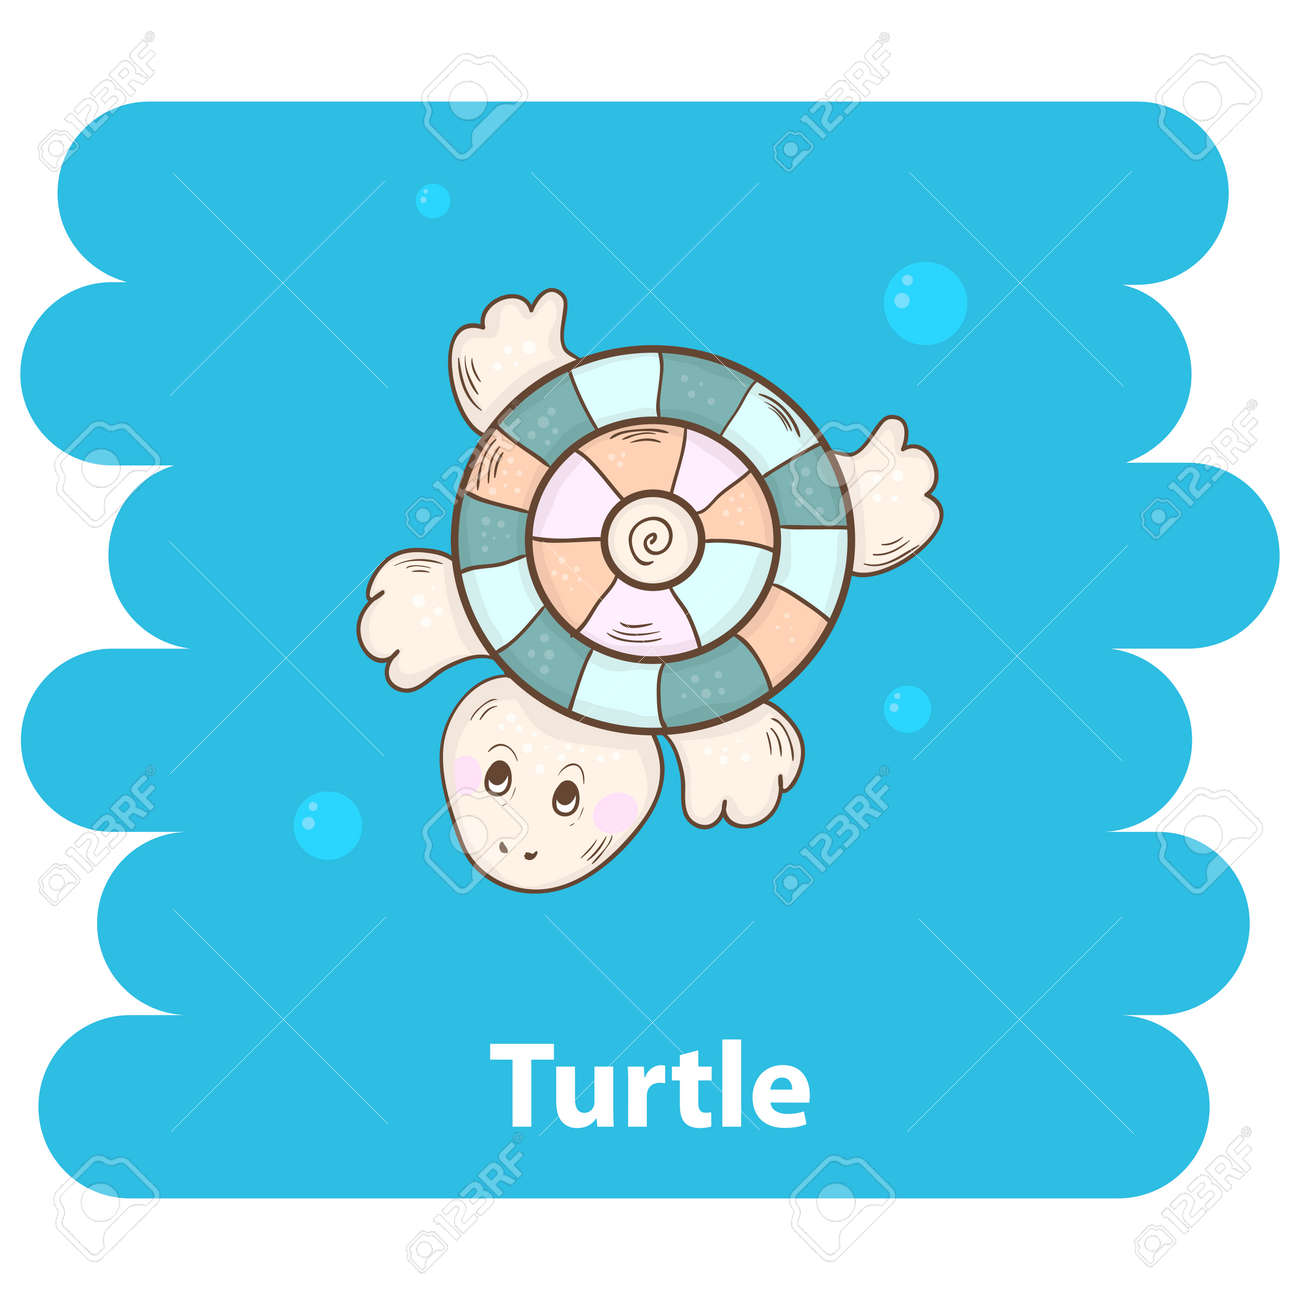 Cute Cartoon Turtle Vector Illustration Cartoon Animal Turtle